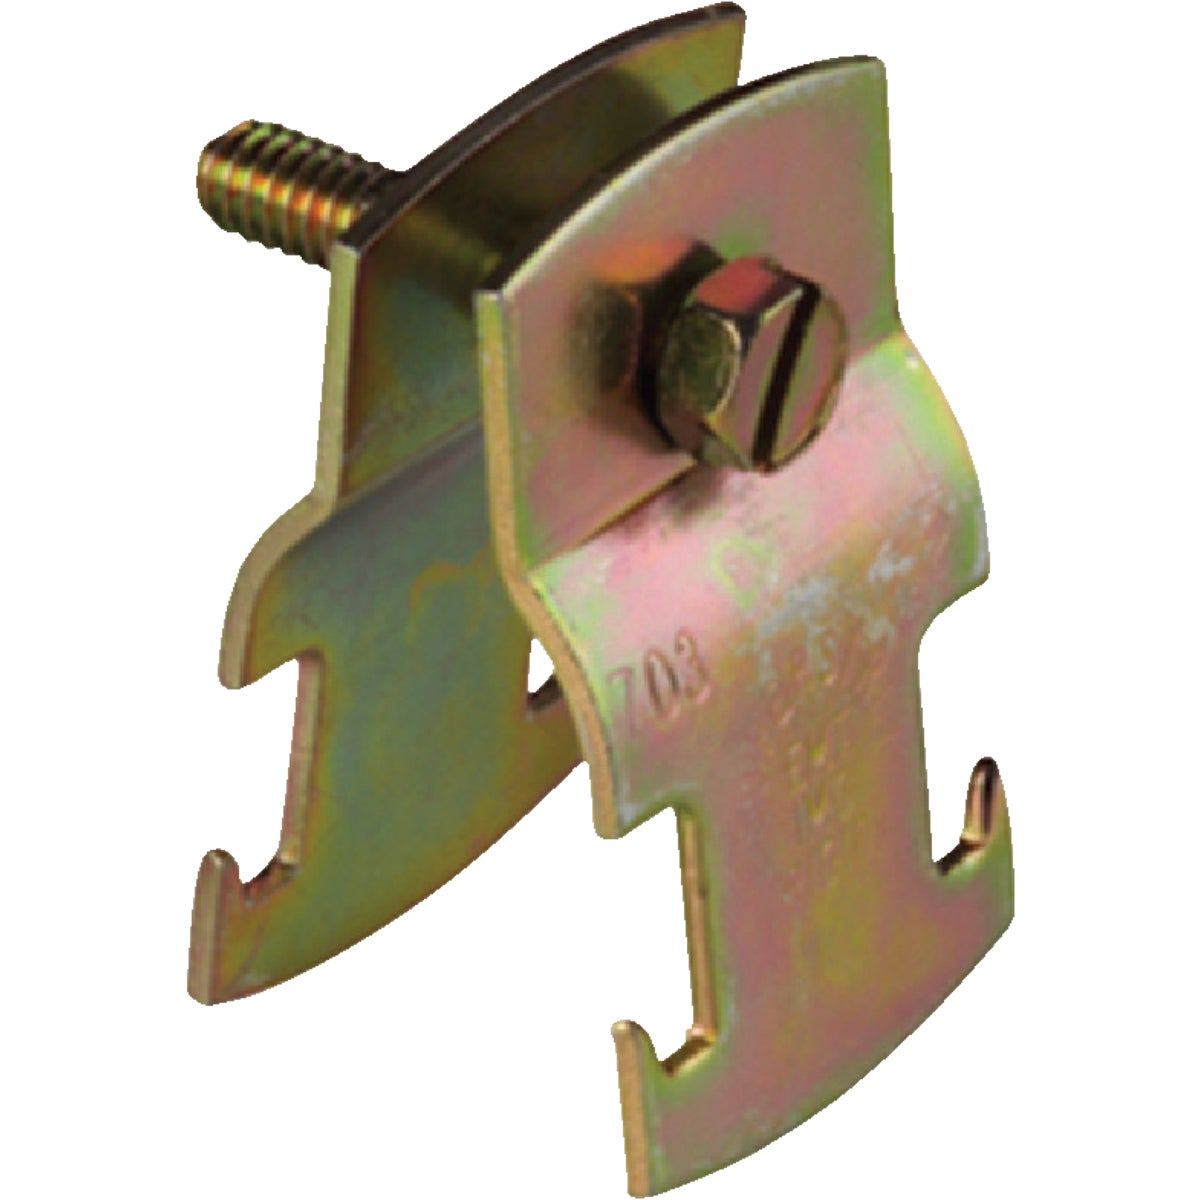 "1"" PIPE CLAMP - Z703-1-25 by Thomas & Betts"